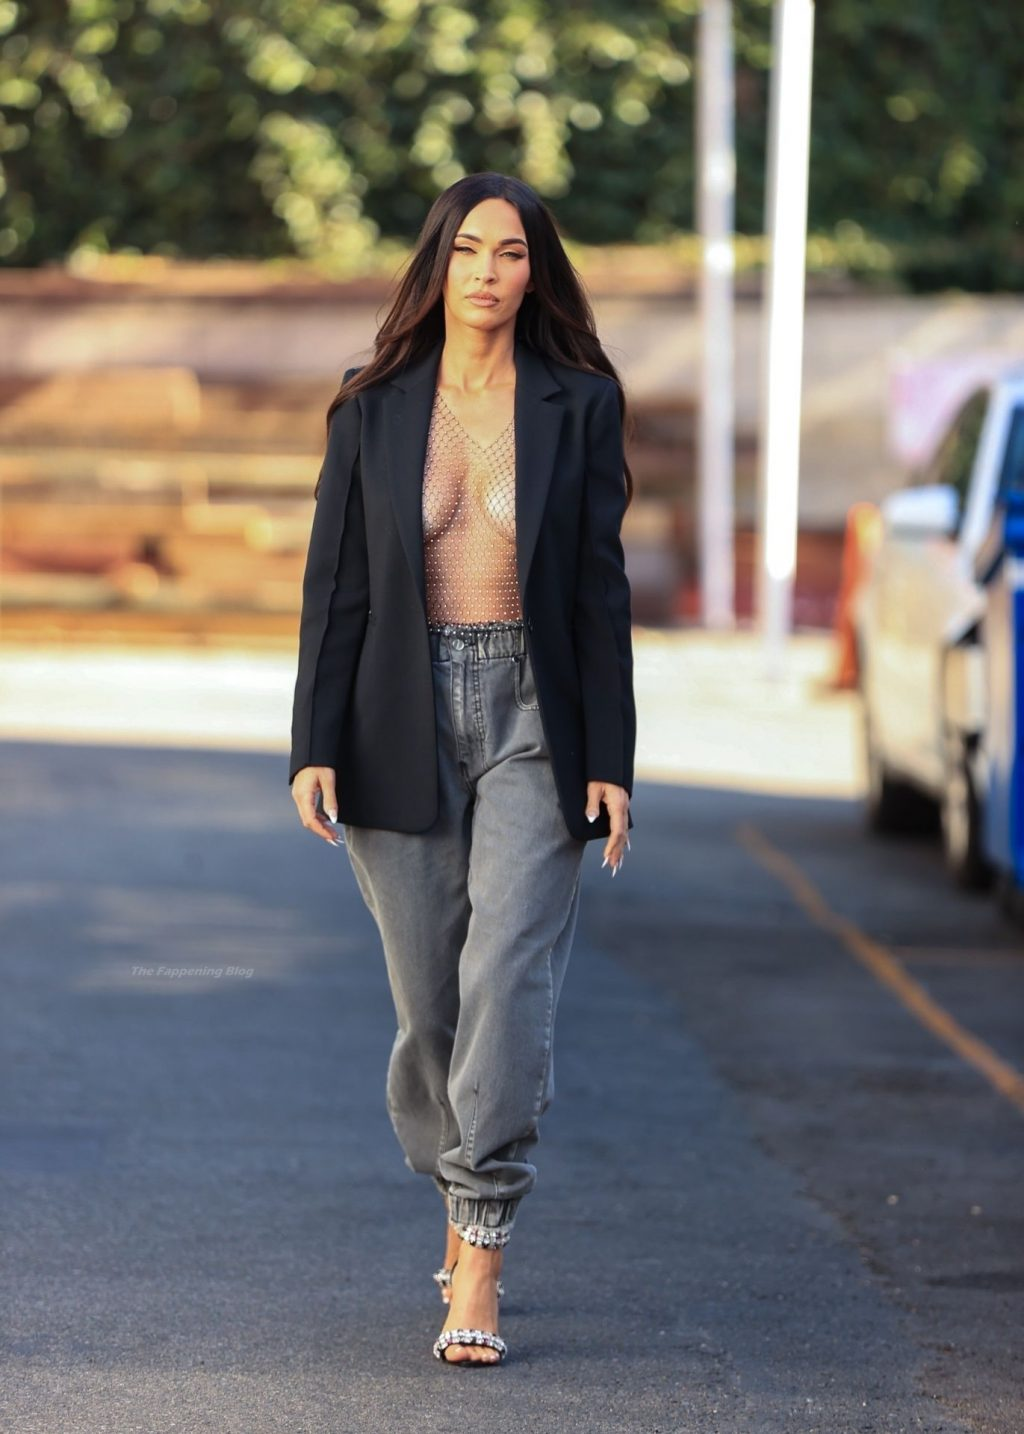 Megan Fox Leaves Little to Imagination While Leaving a Photoshoot in LA (27 Photos)